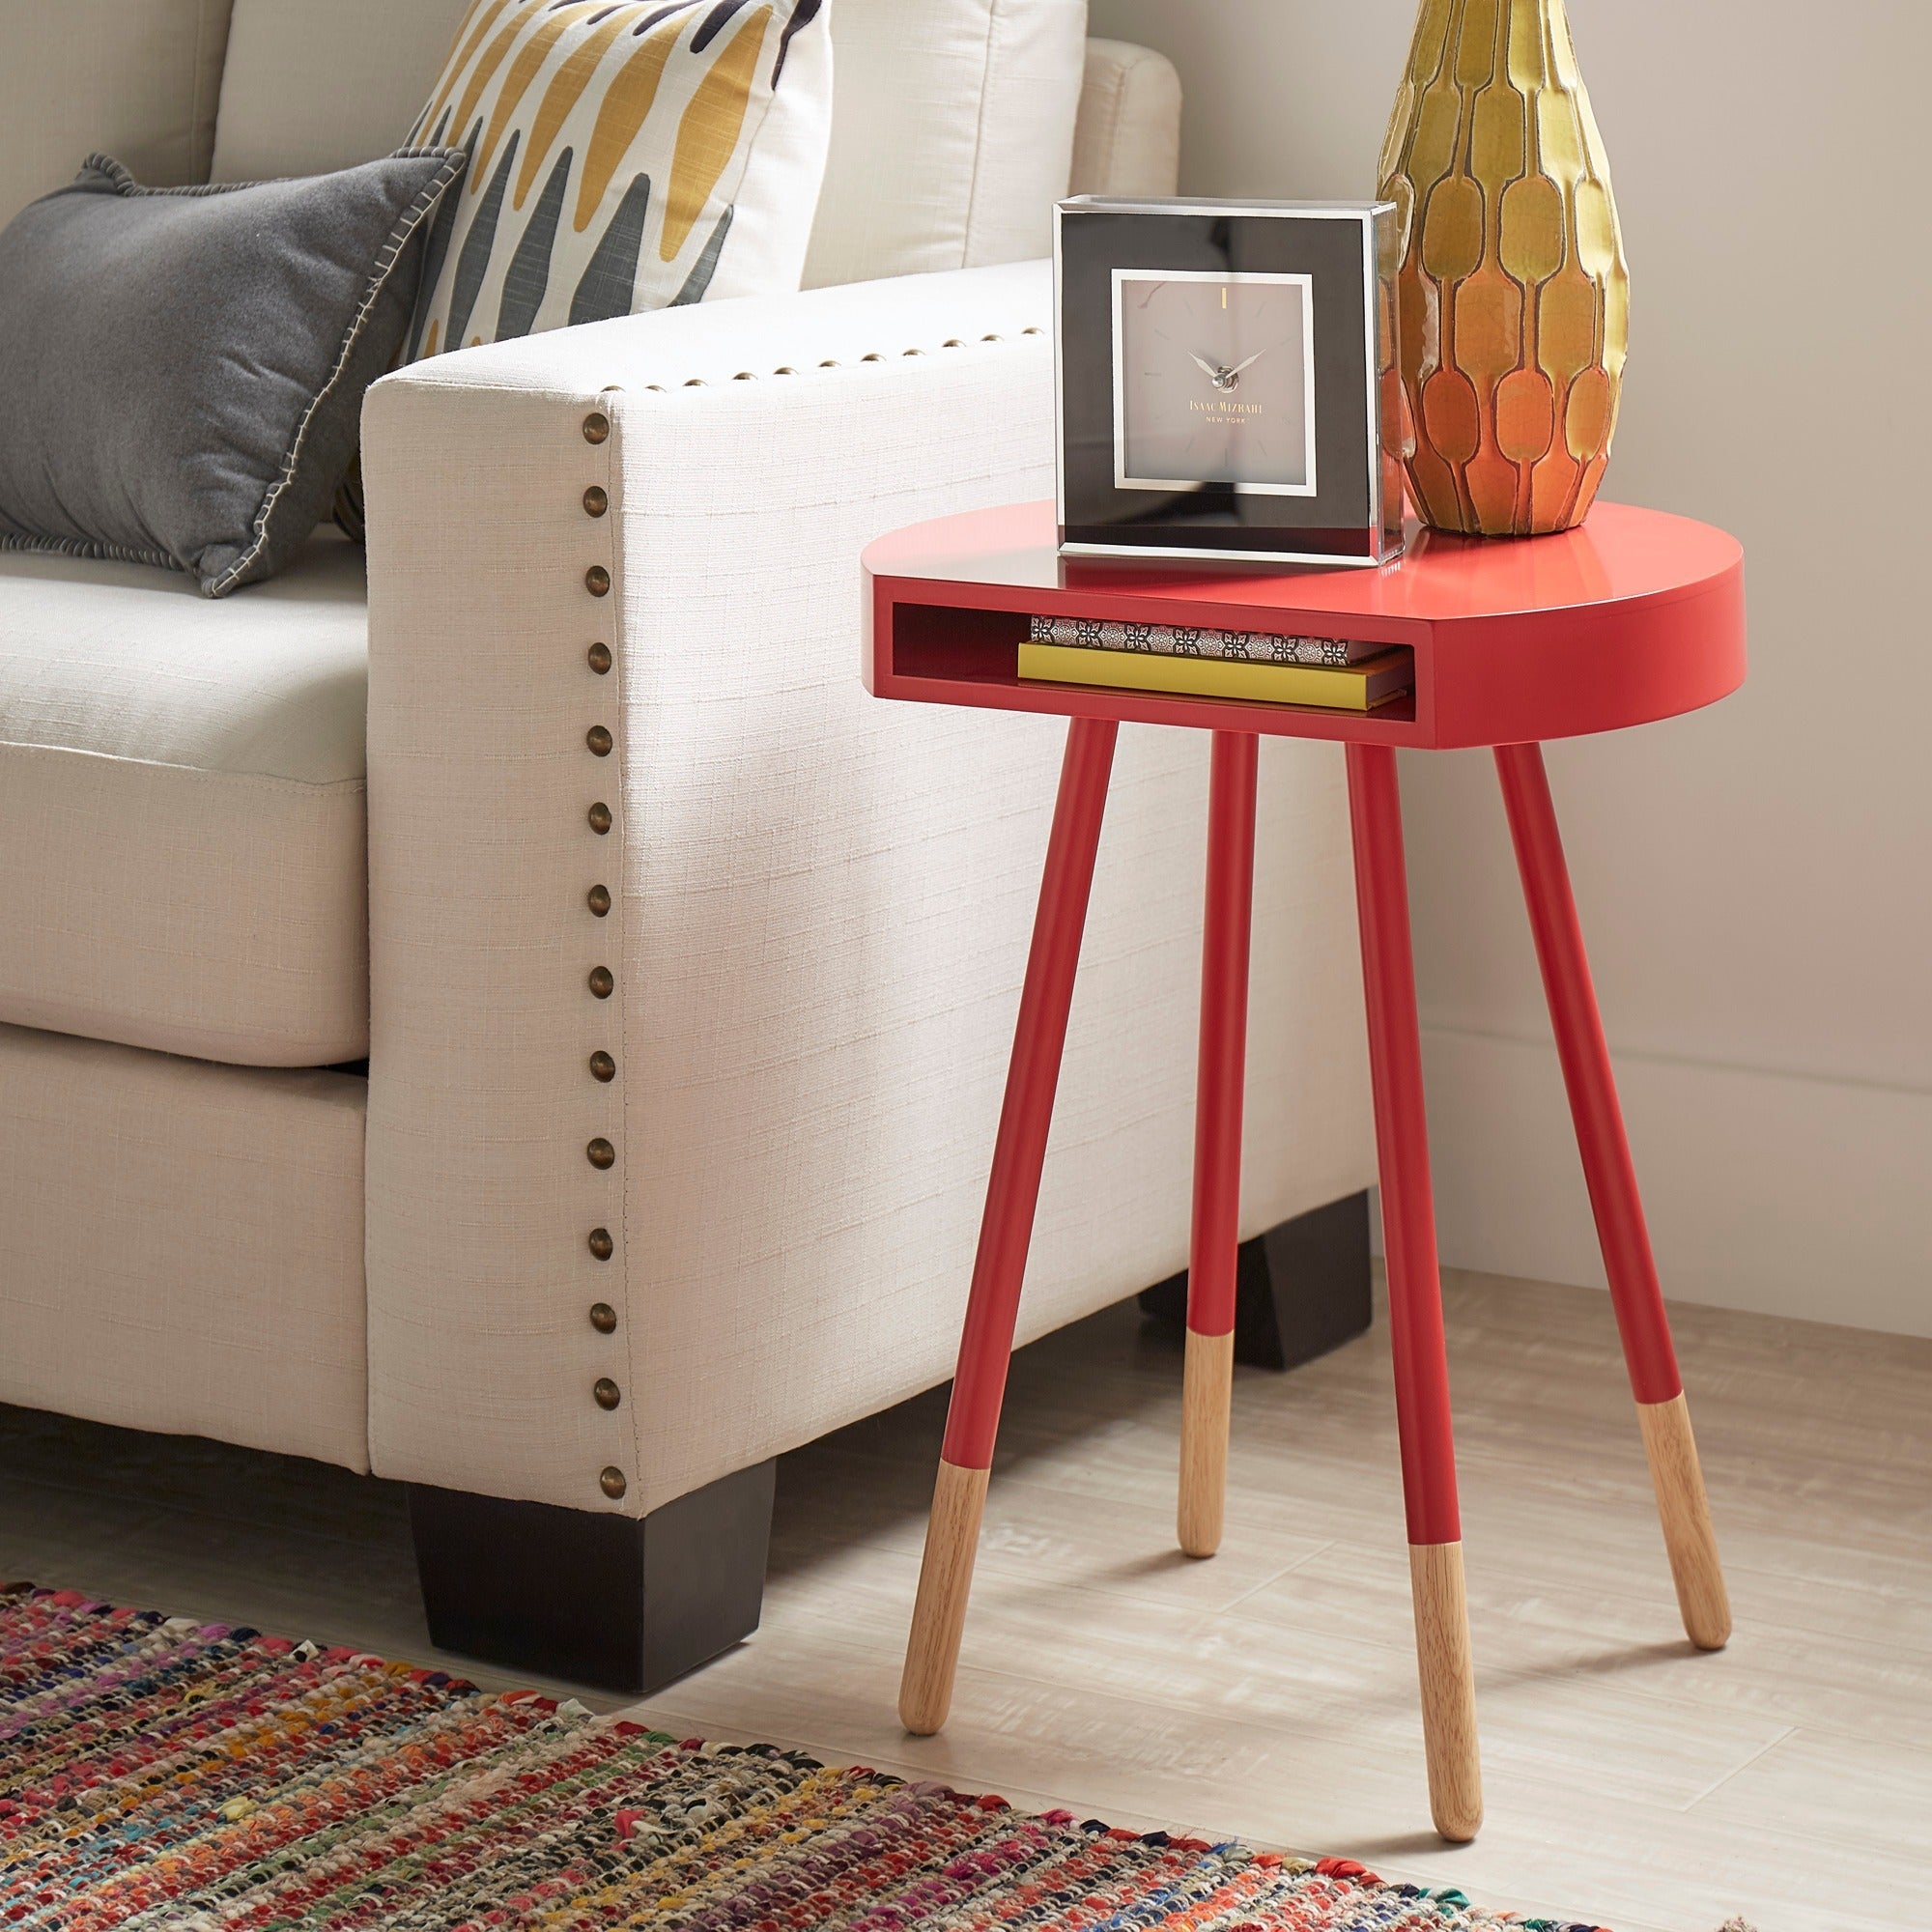 Marcella Paint-dipped Round End Table iNSPIRE Q Modern - Free Shipping  Today - Overstock.com - 20650157